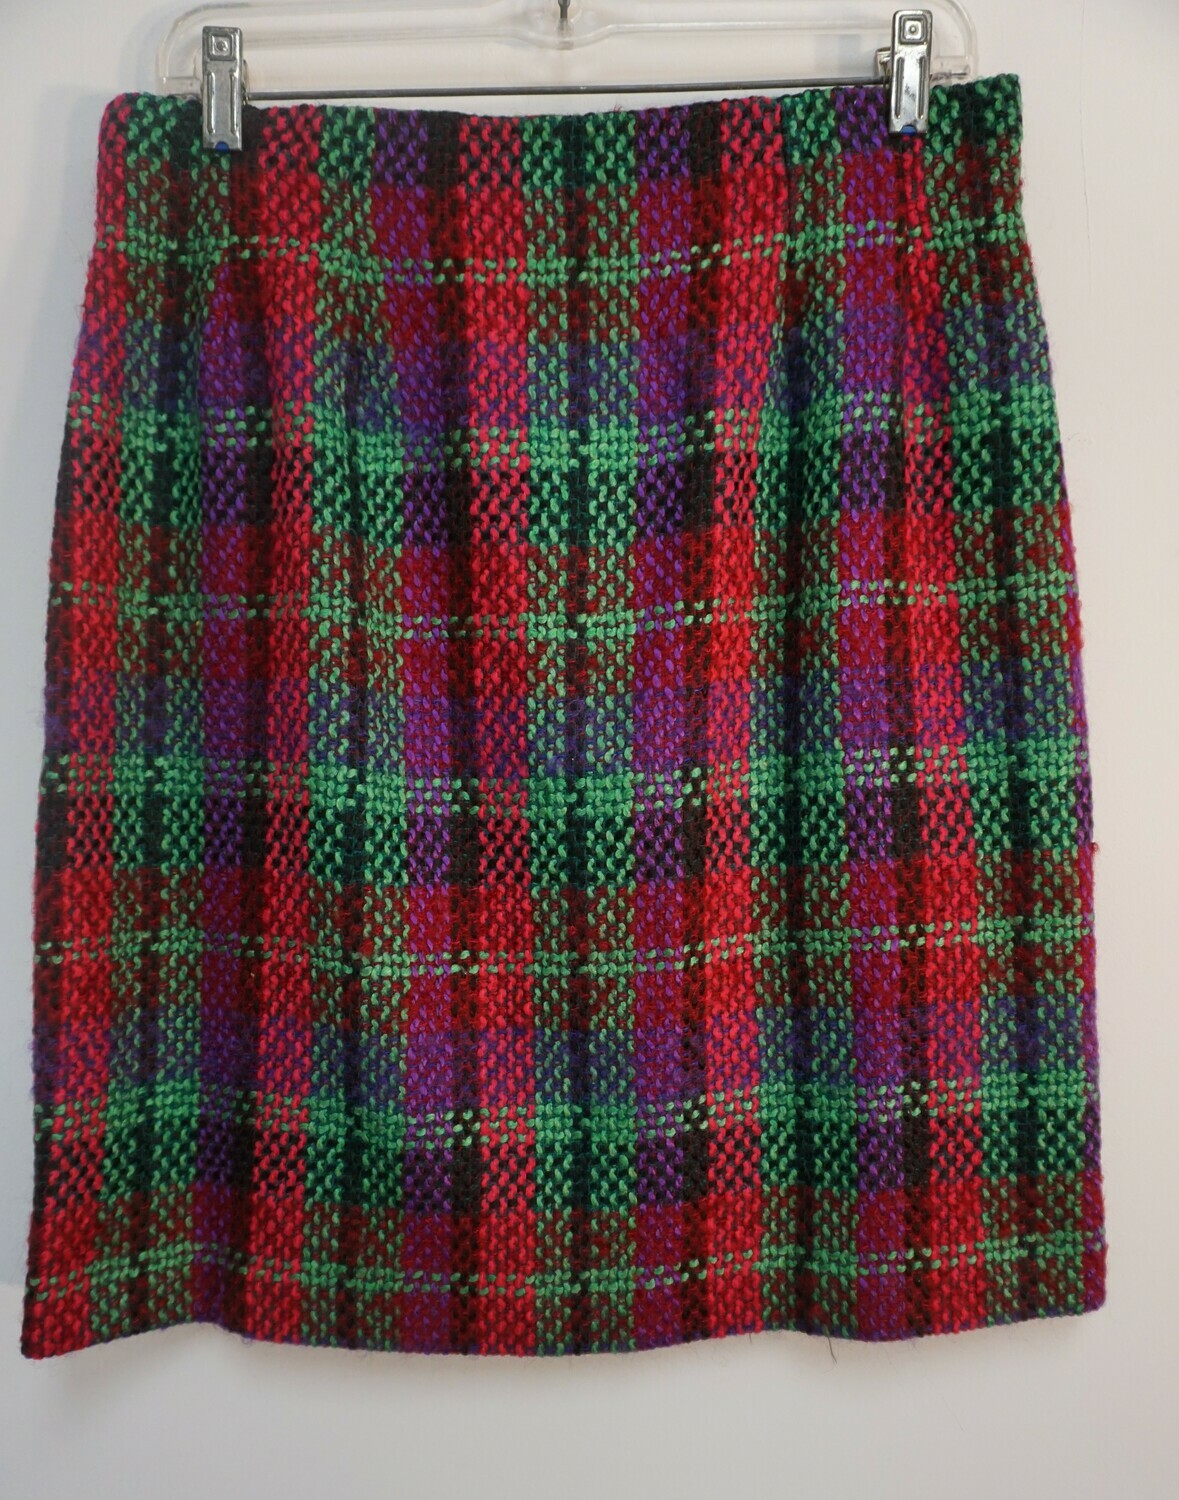 Neiman Marcus Plaid Skirt Size 14